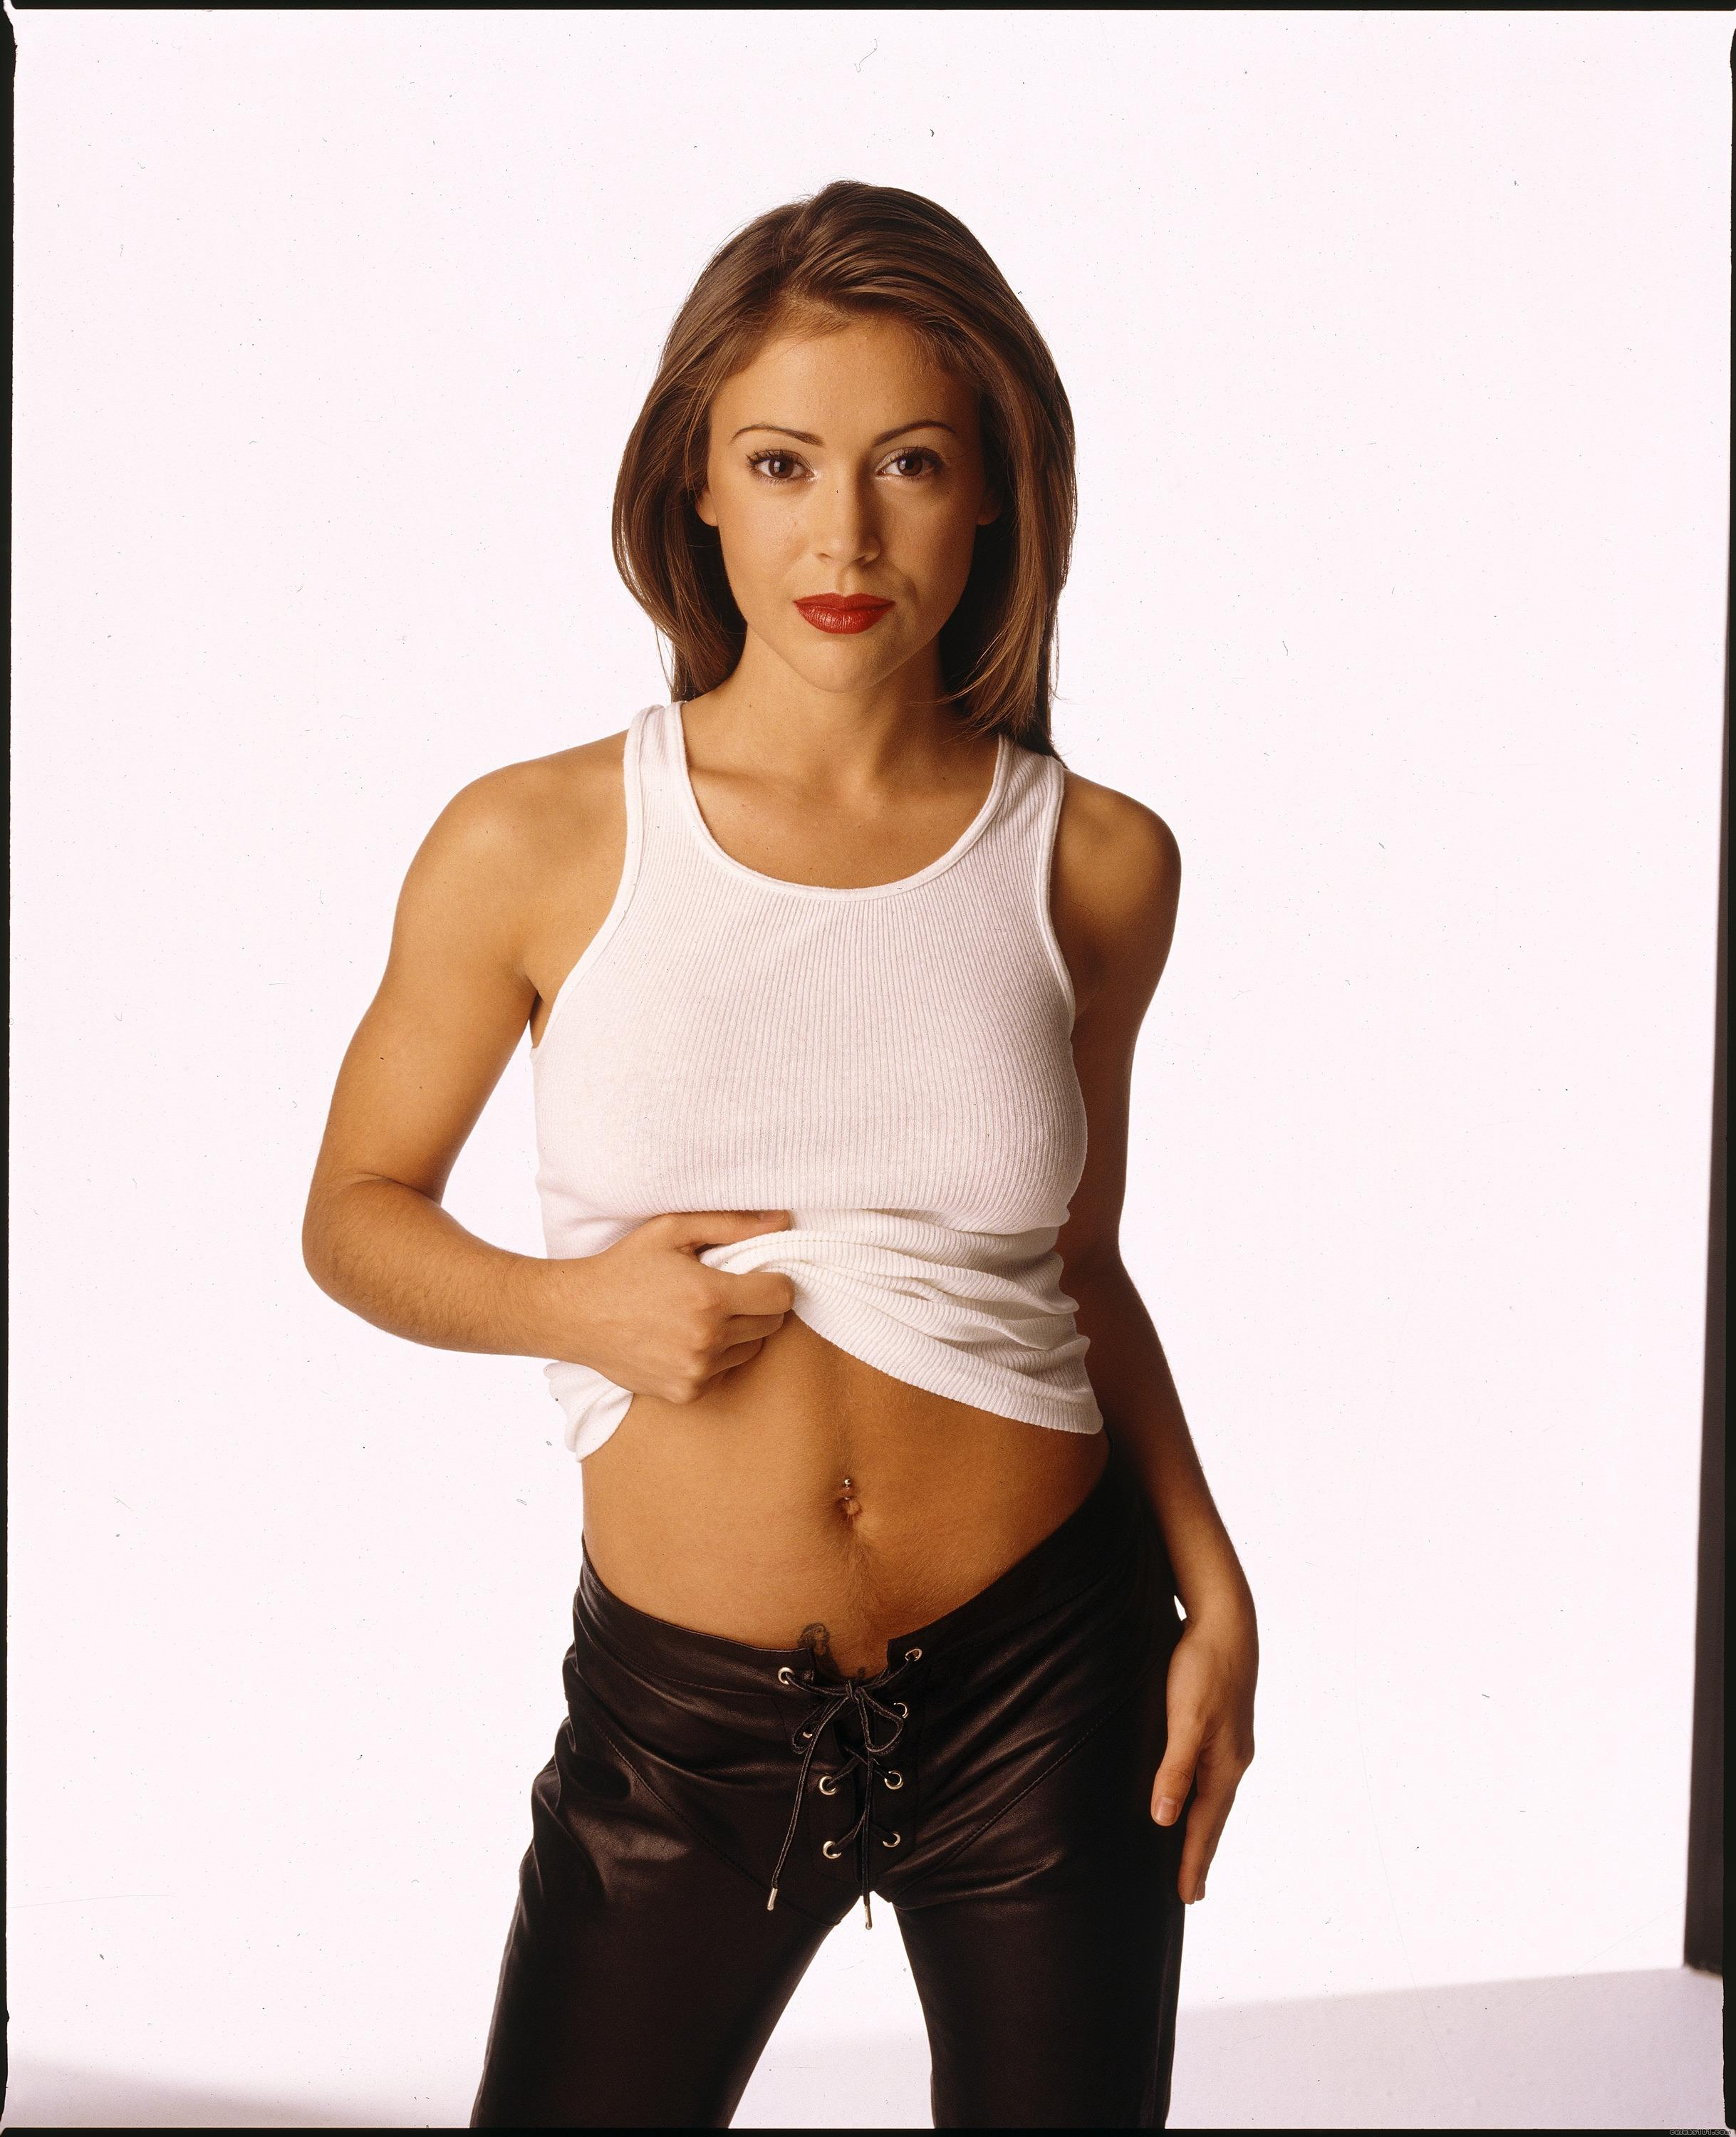 Alyssa Milano - High quality image size 2437x3000 of Alyssa Milano (